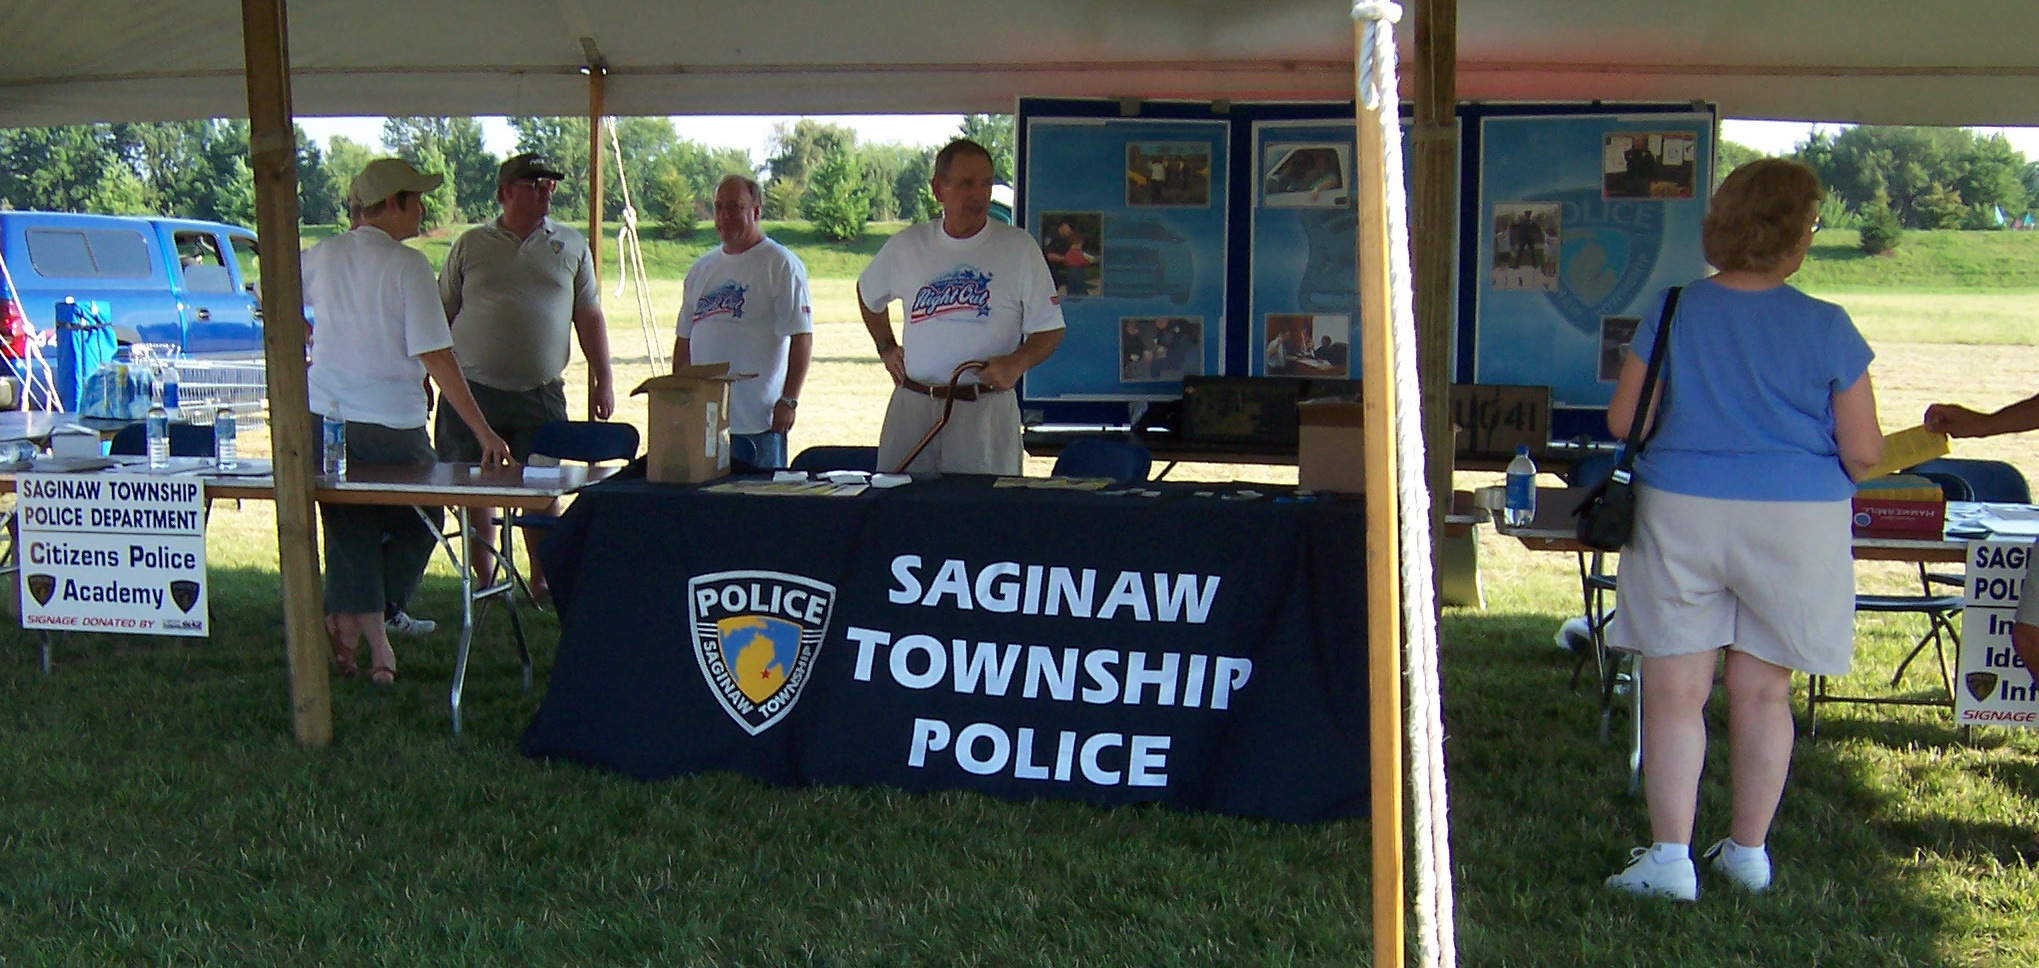 Saginaw Township Police Department- National Night Out